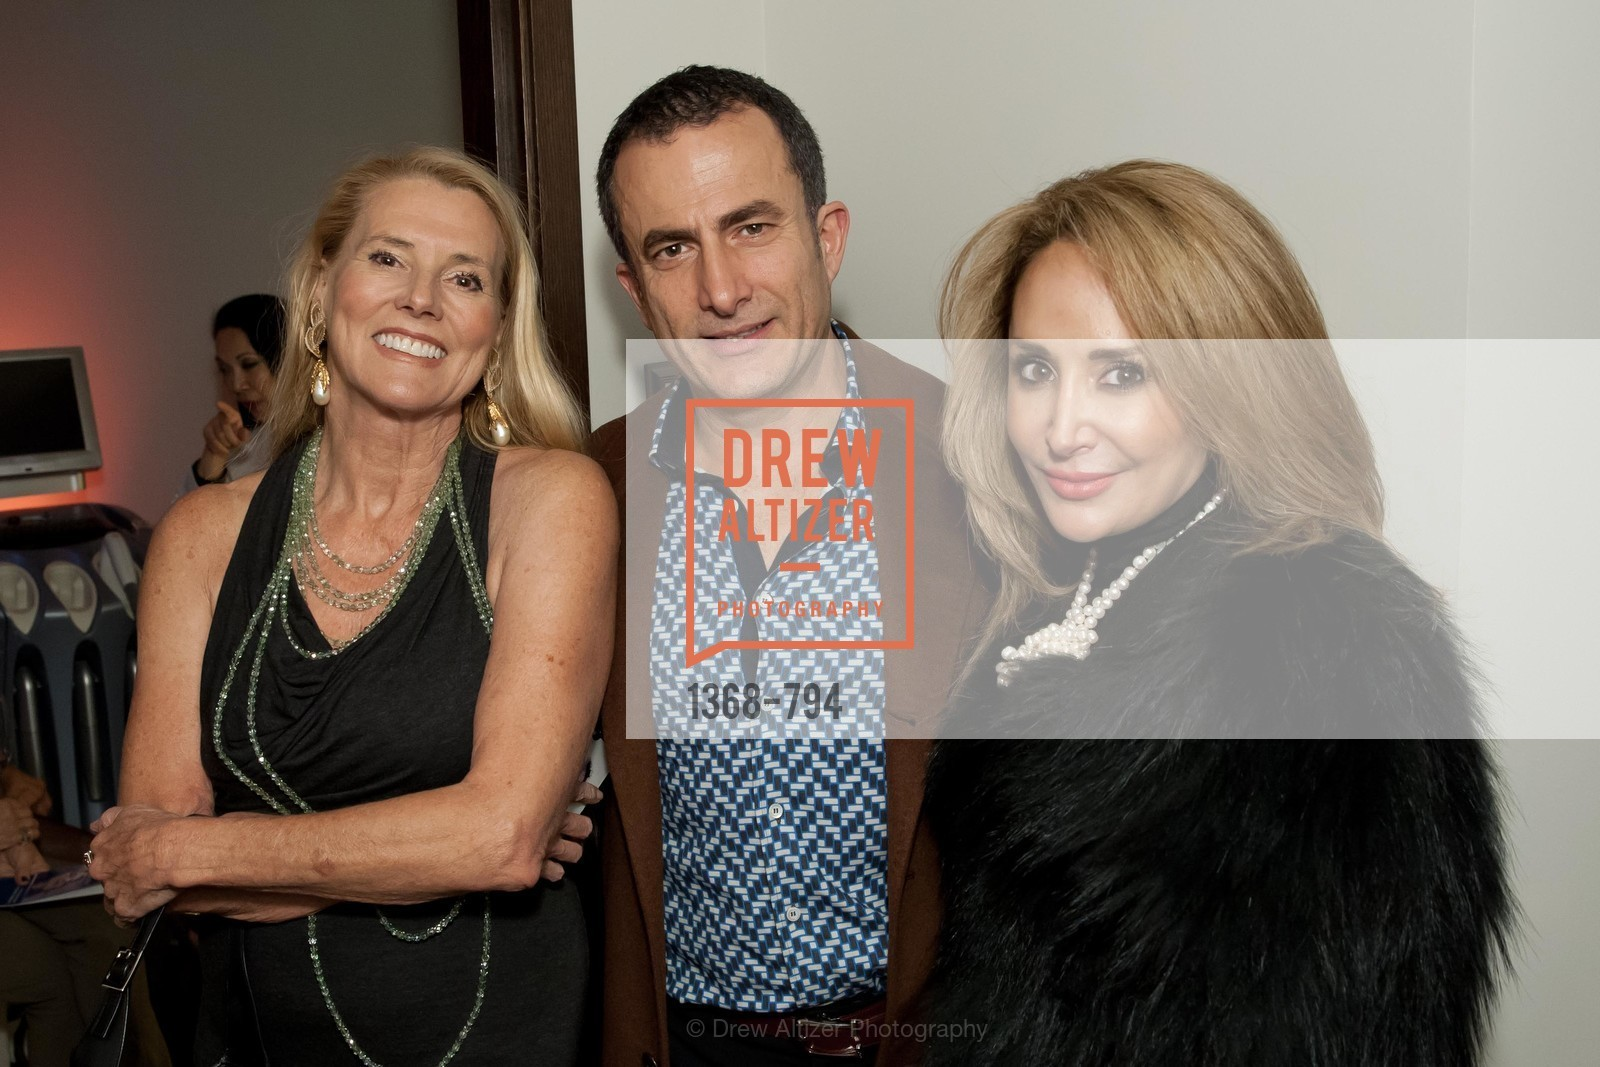 Christina DeLimur, Jorge Maumer, Brenda Zarate, EPI CENTER MedSpa Anniversary and Launch of REPLETE - Evening Celebration, US, April 22nd, 2015,Drew Altizer, Drew Altizer Photography, full-service agency, private events, San Francisco photographer, photographer california